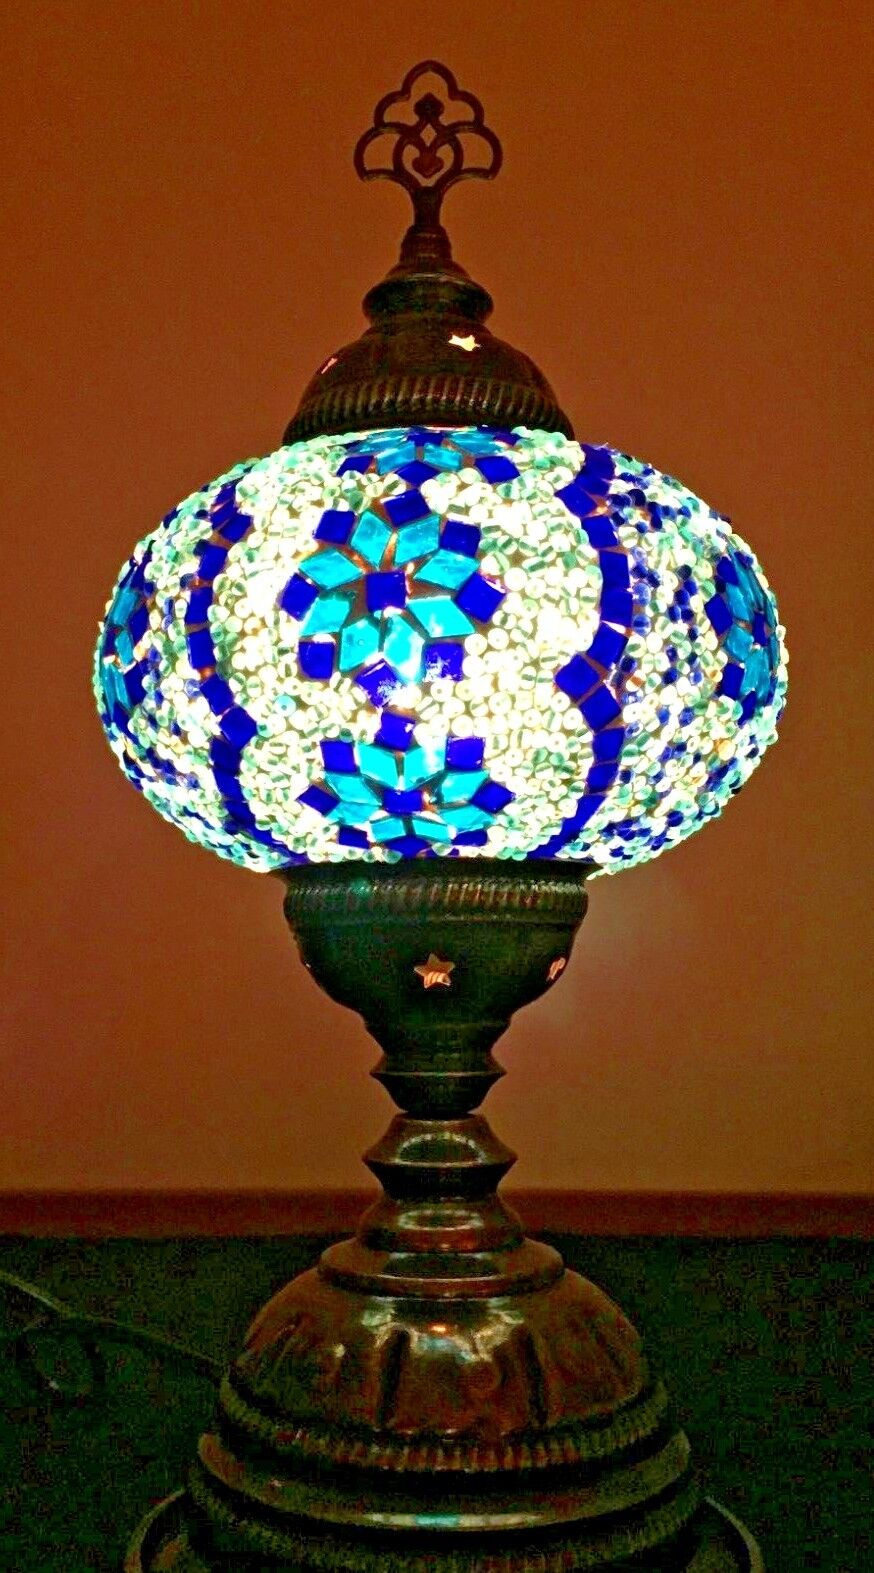 Mosaic Table Lamp Stained Glass Turkish Moroccan Light Hand Made Blue Teal 3star For Sale Online